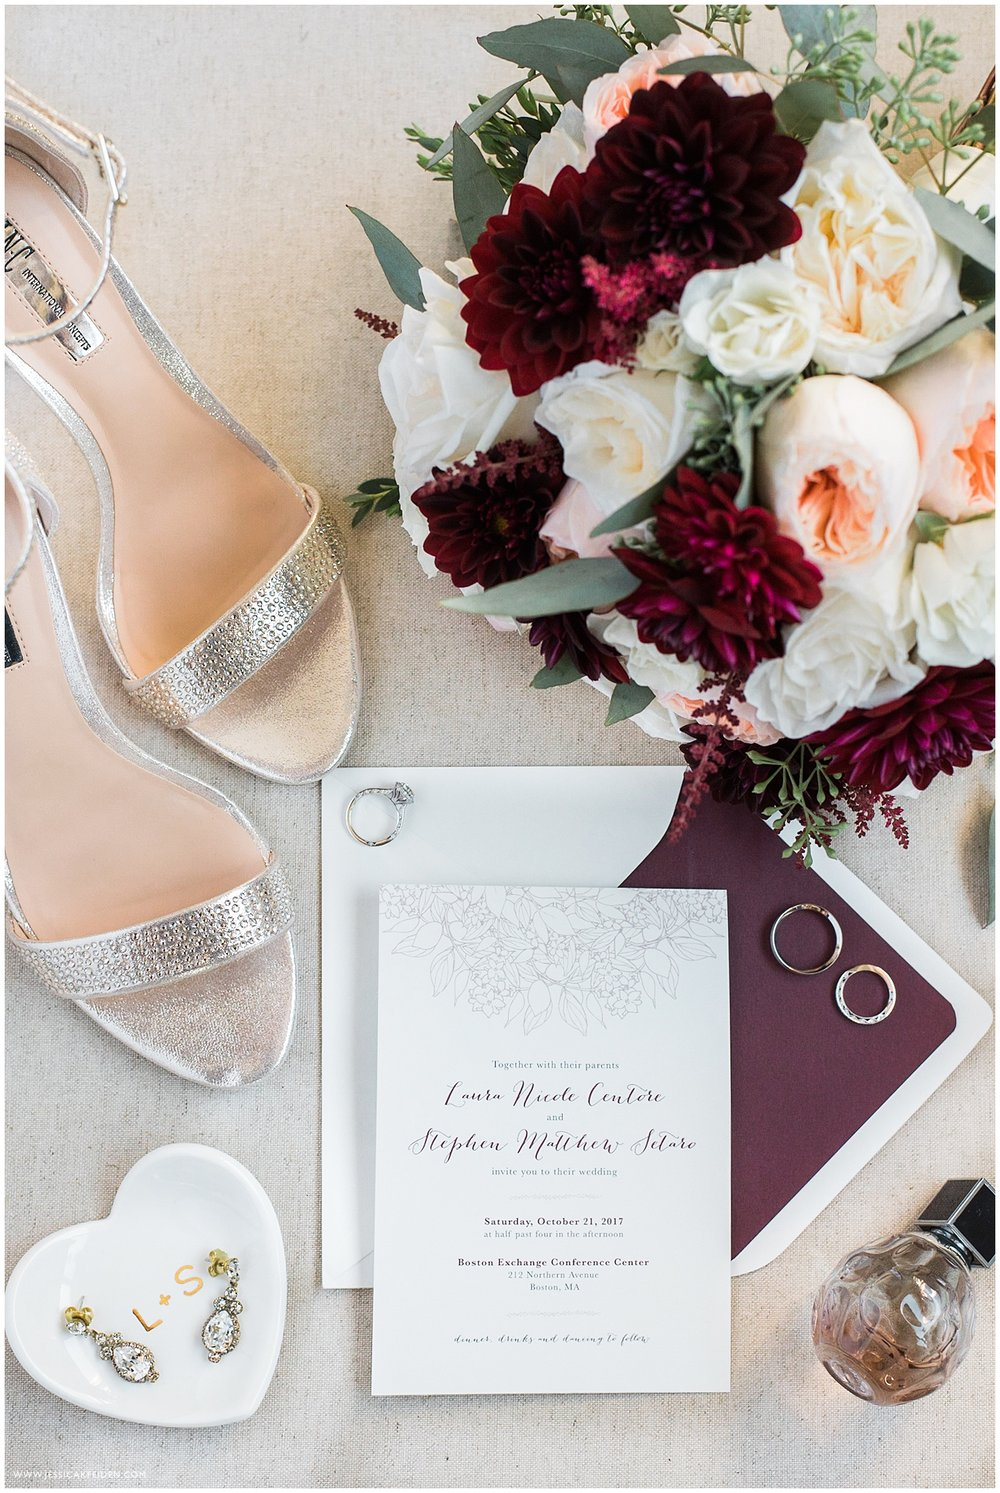 Jessica K Feiden Photography_Top 5 Things to Have Ready for Your Wedding Photographer_0017.jpg